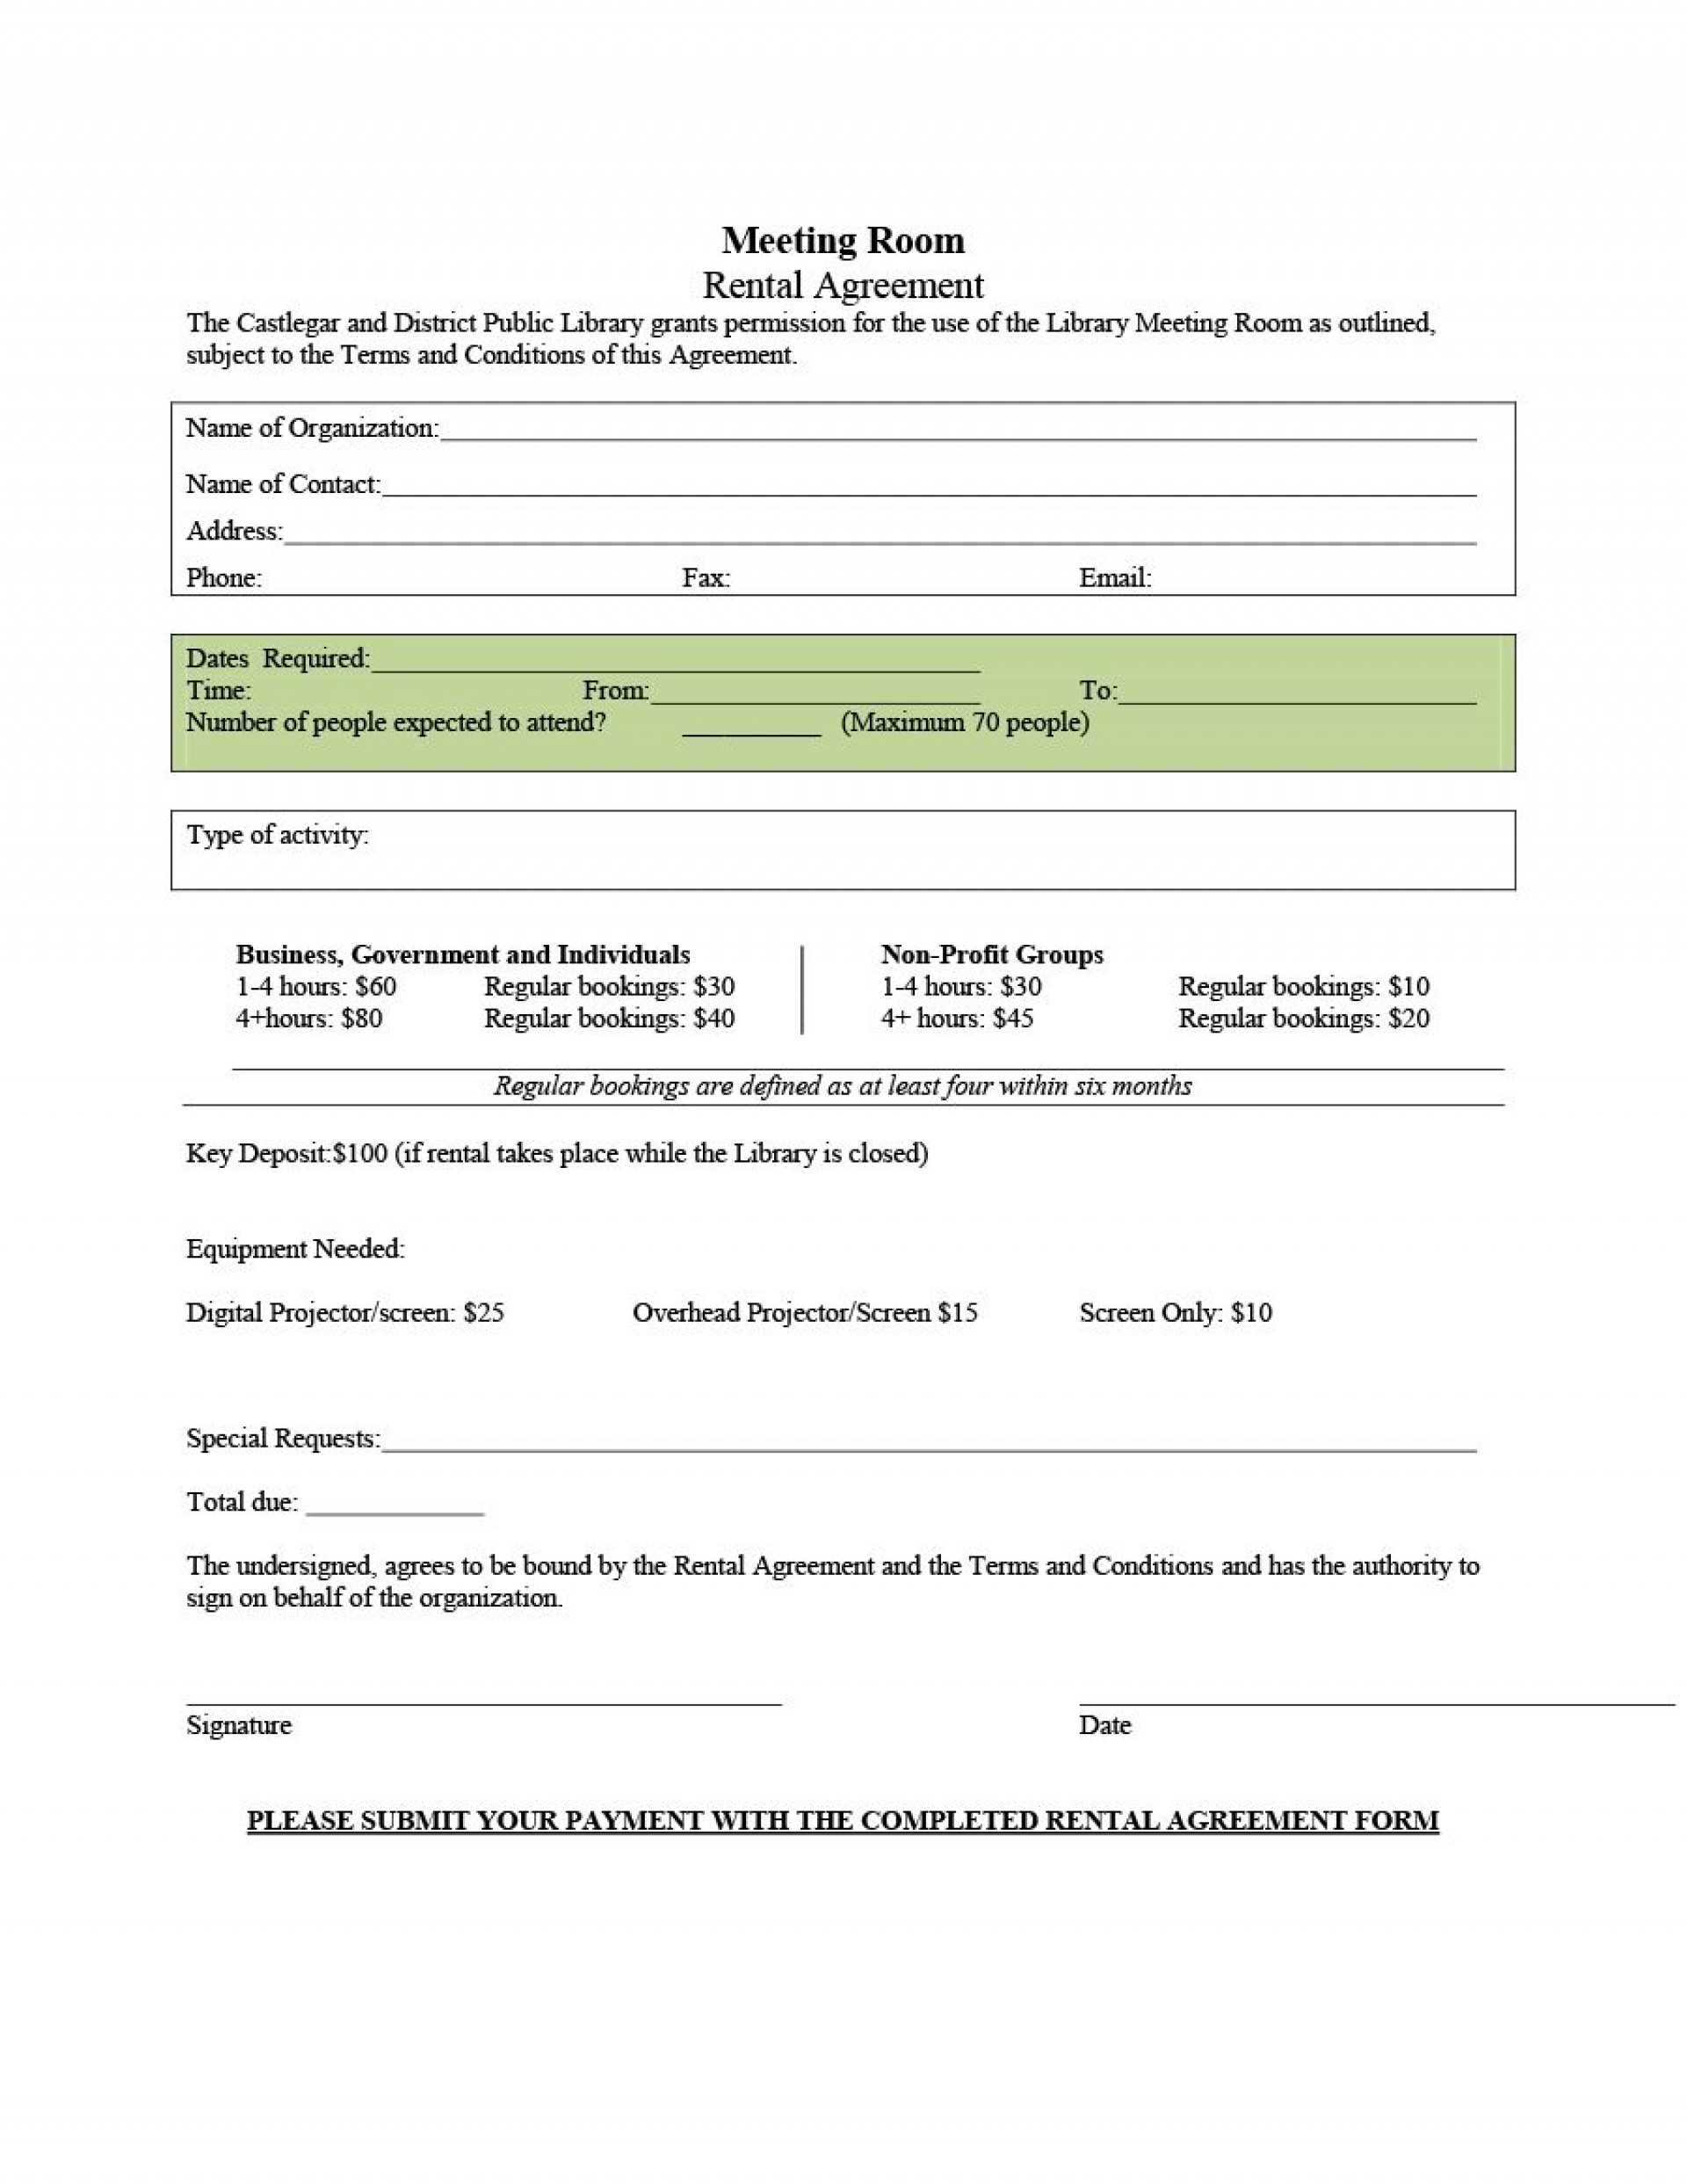 006 Exceptional Car Rental Agreement Template South Africa Photo  Vehicle Rent To Own1920